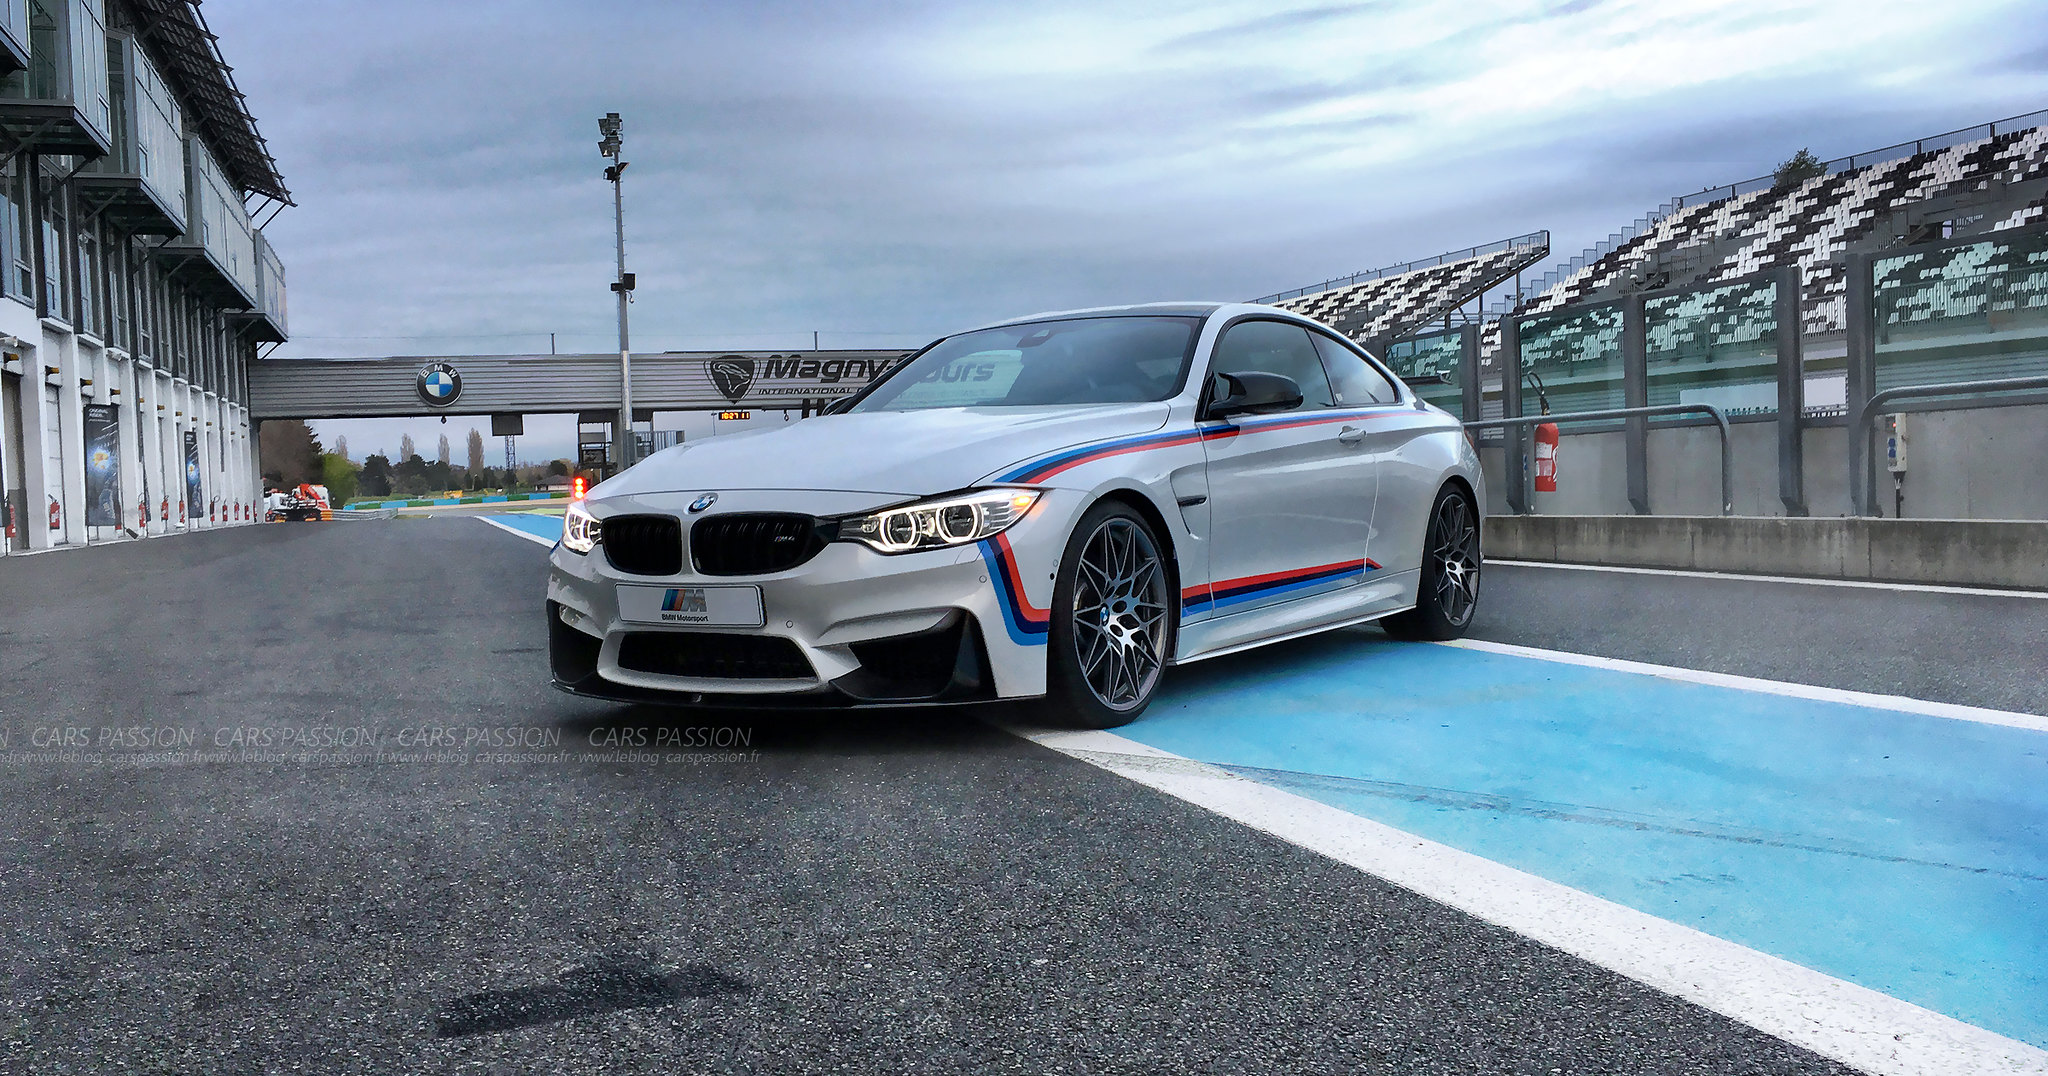 bmw-m2-M4-gts-magny-cours-drift-track (2)